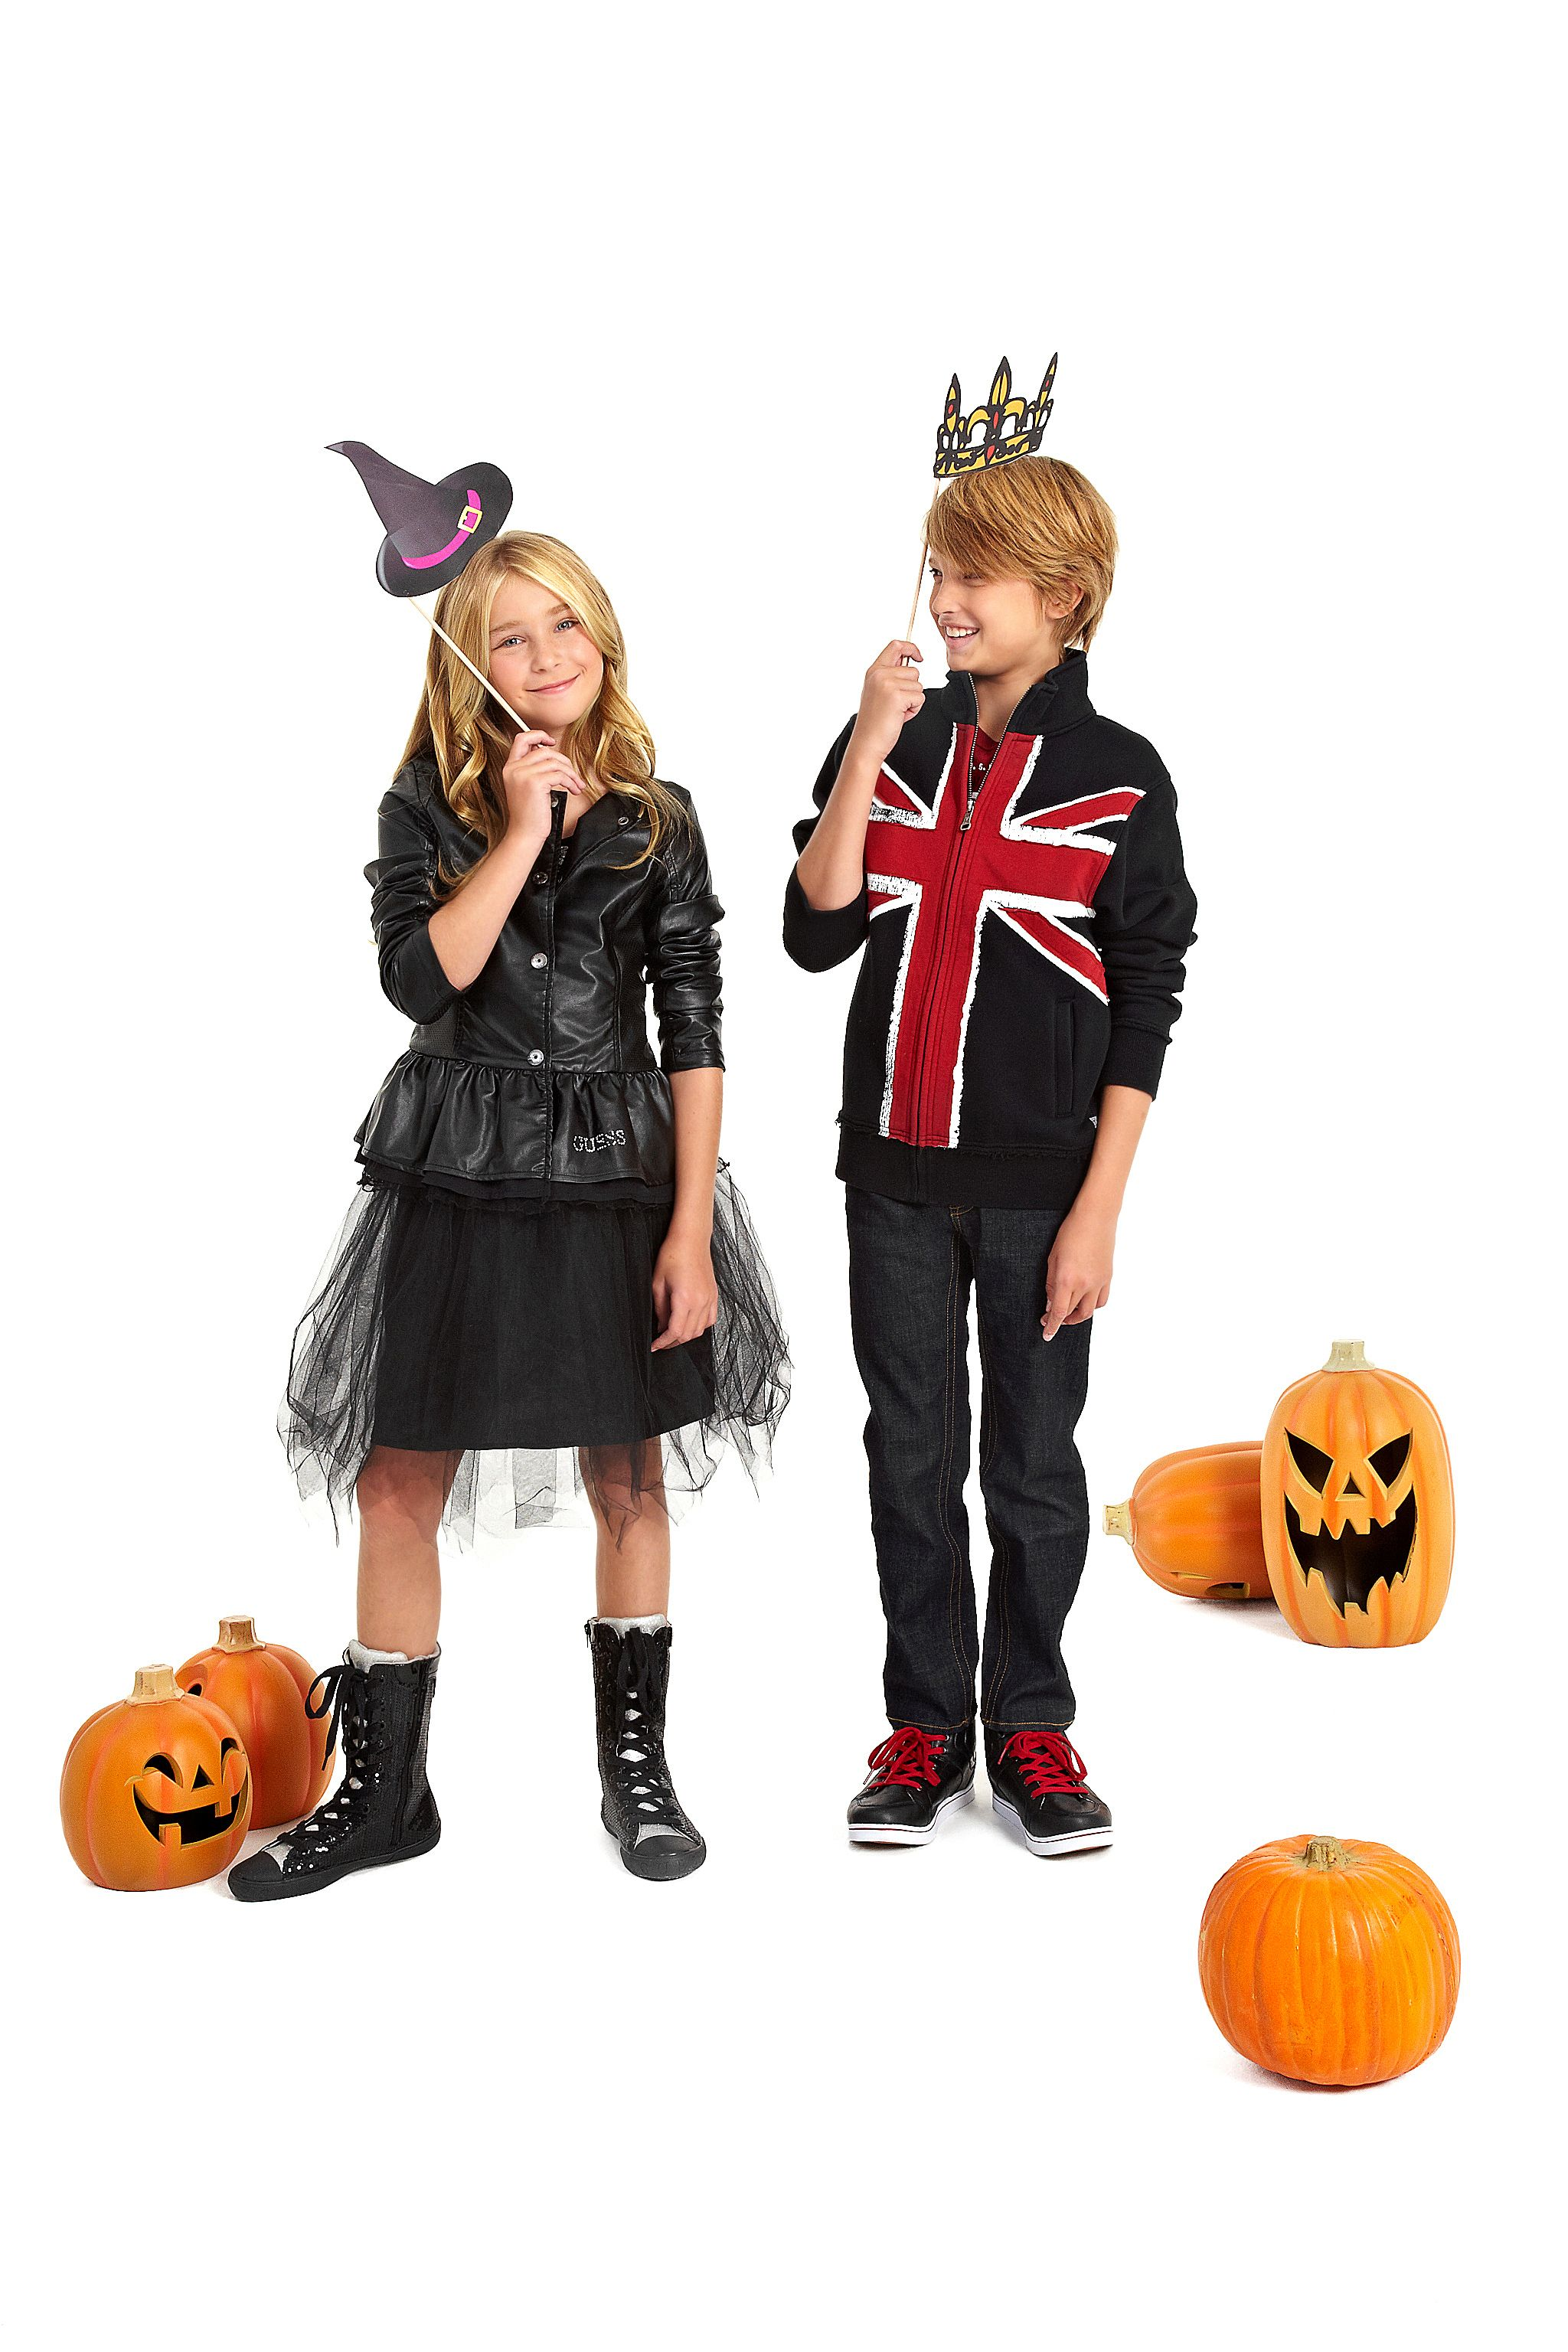 GUESSkids DIY Halloween Costume Ideas: Witch and Prince | Halloween ...